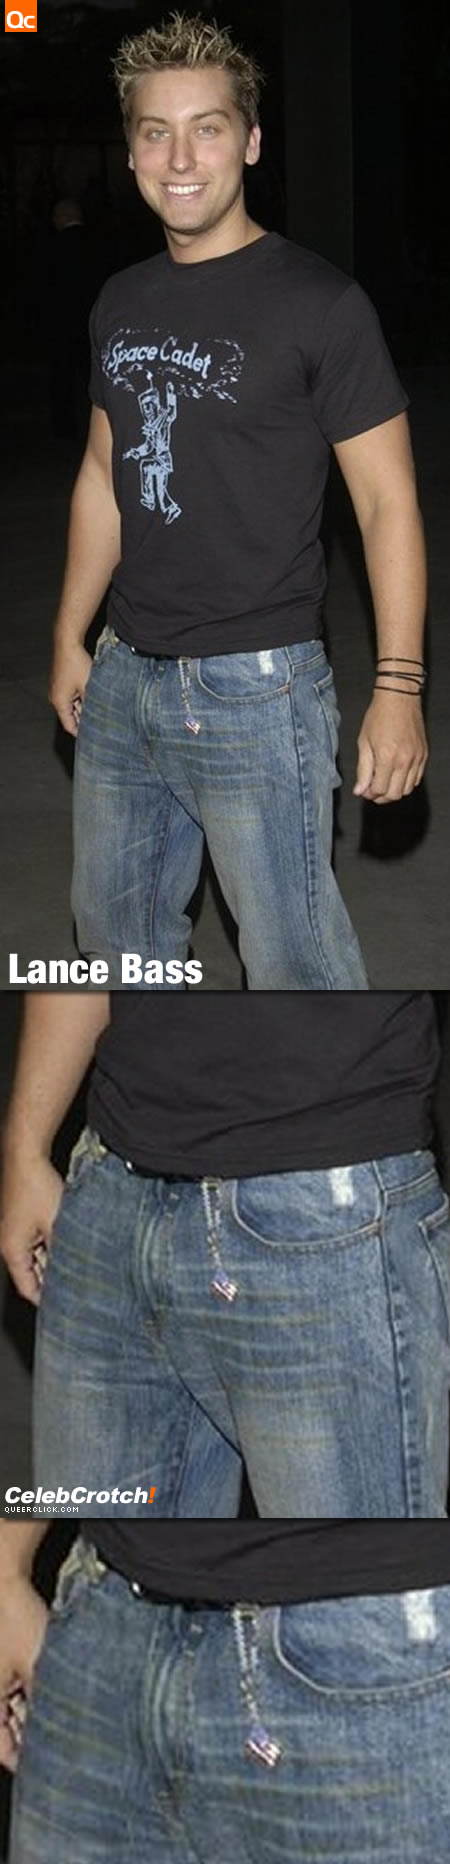 Lance Bass' Crotch